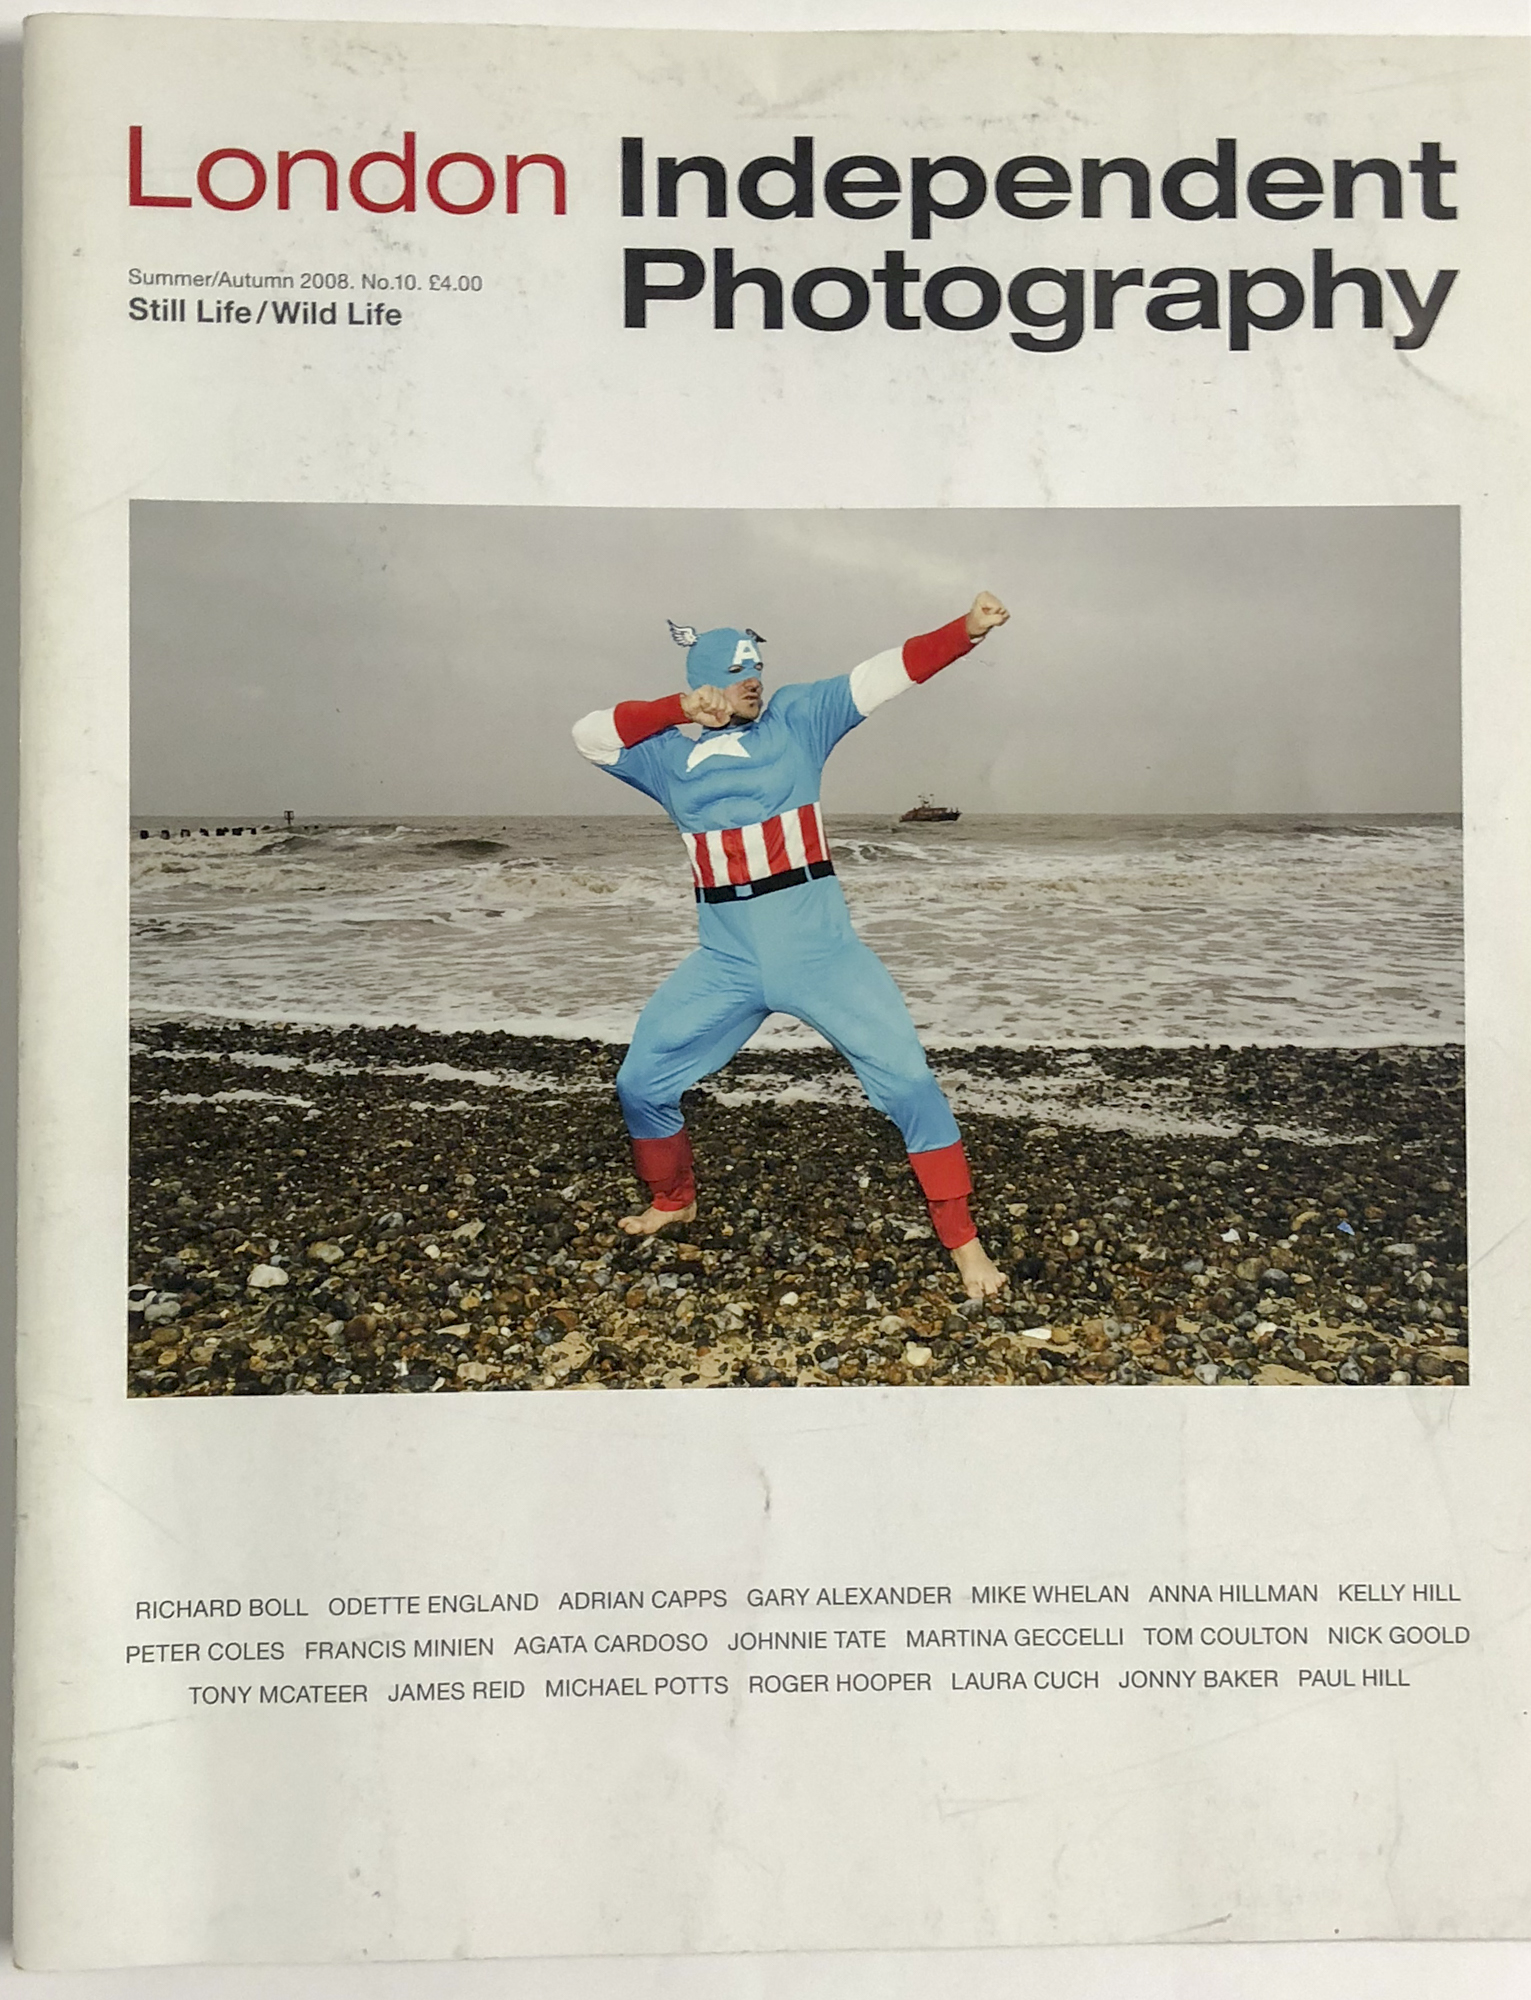 London Independent Photography, 2008